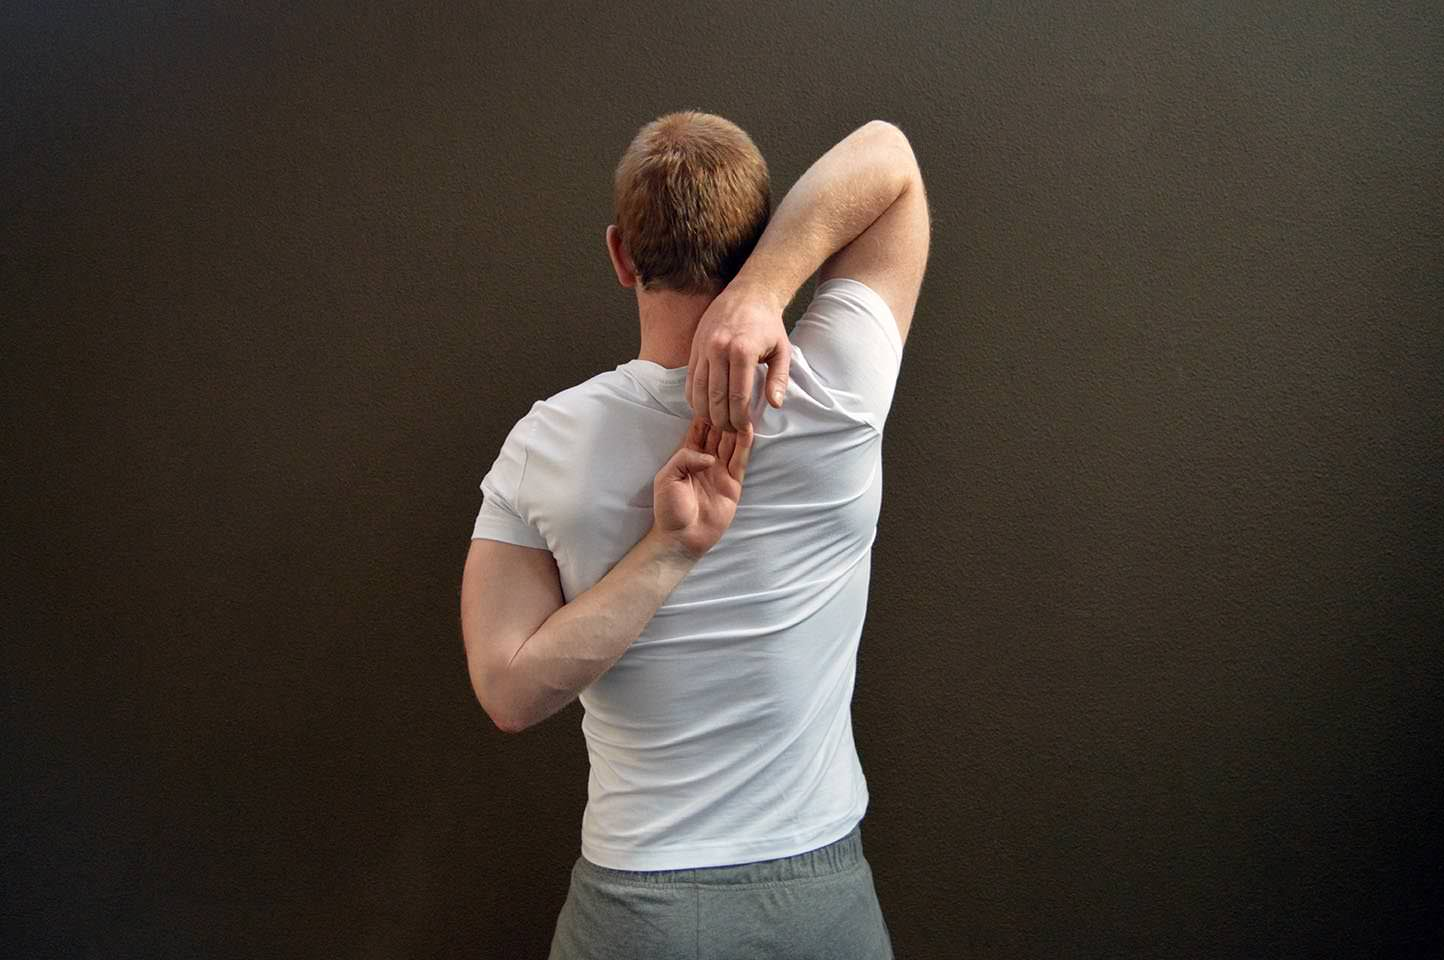 Étirement triceps - Position 3